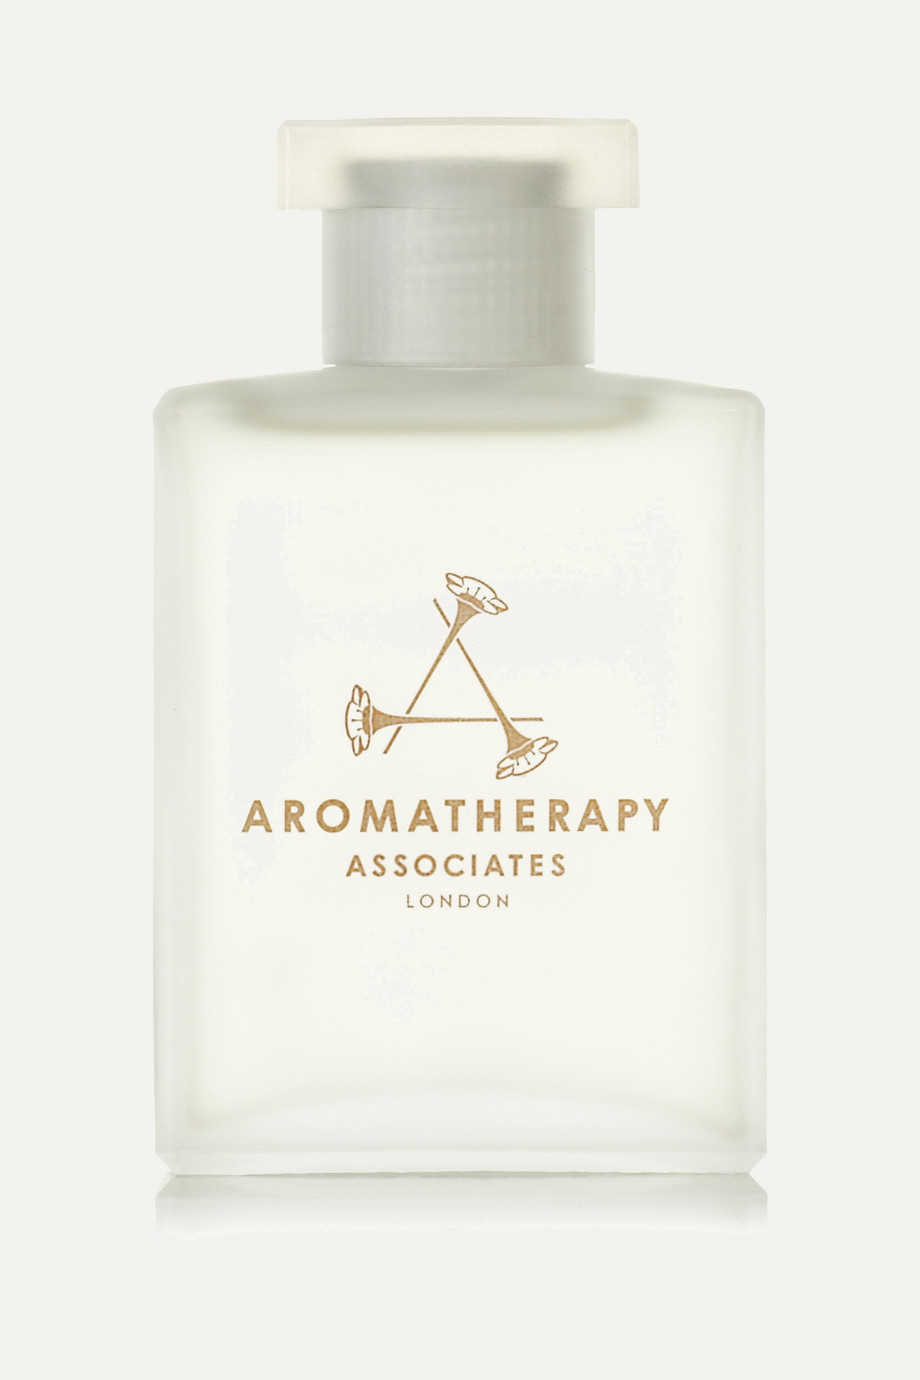 Aromatherapy Associates Support Lavender & Peppermint Bath & Shower Oil, 55ml